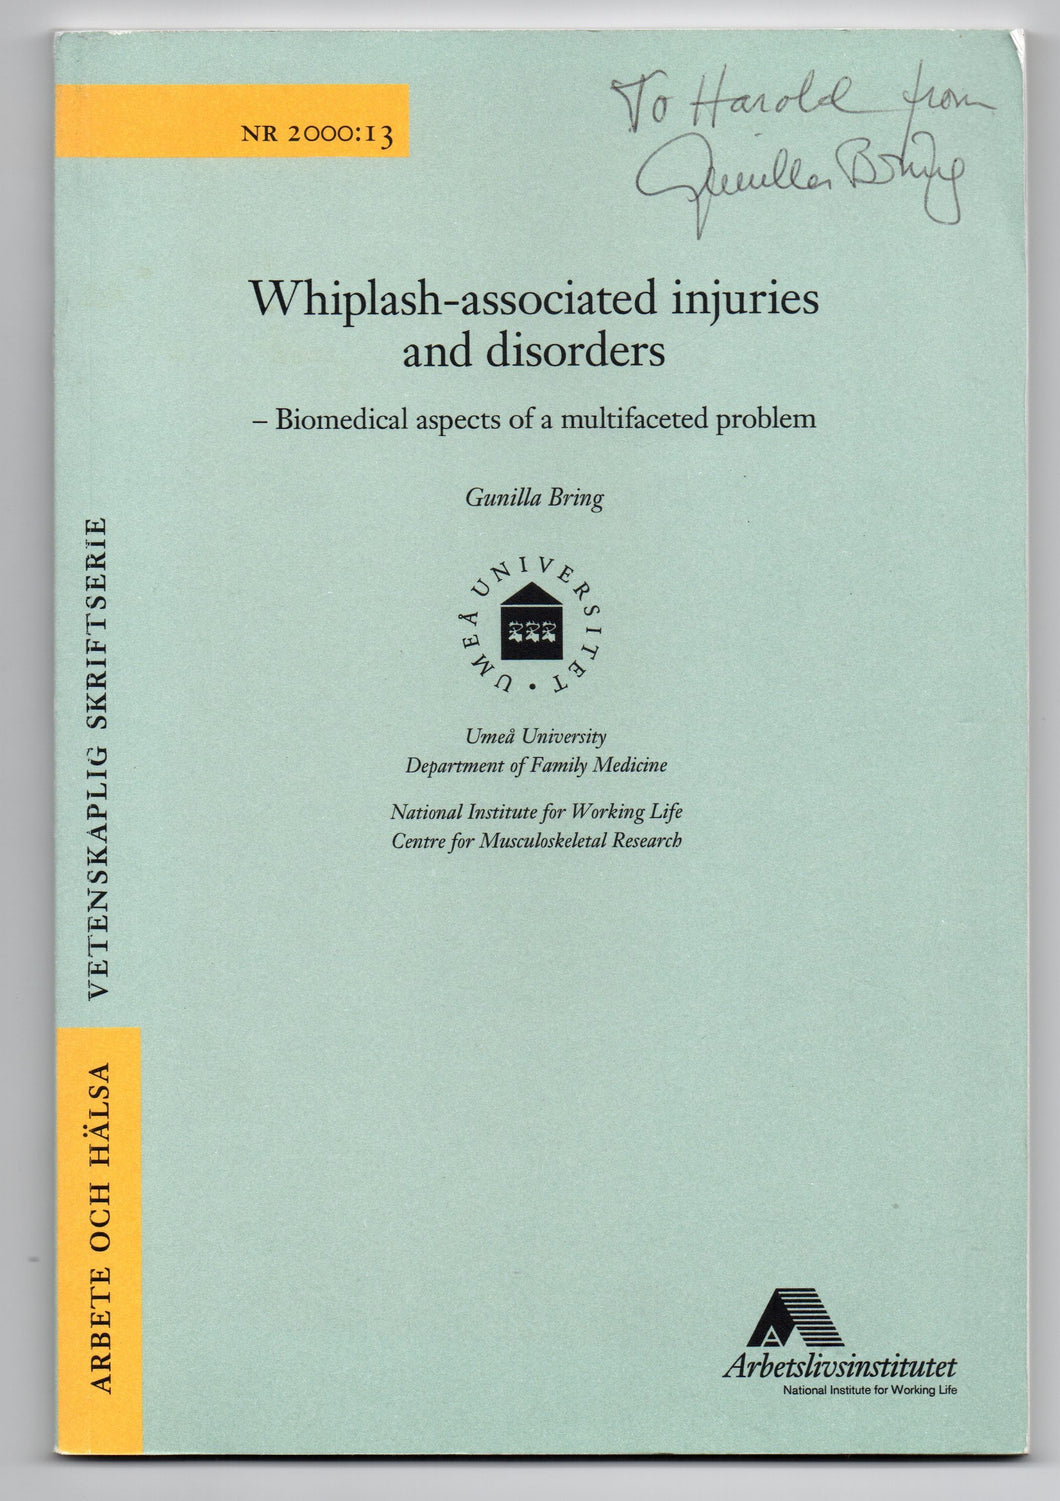 Whiplash-associated injuries and disorders - biomedical aspects of a multifaceted problem